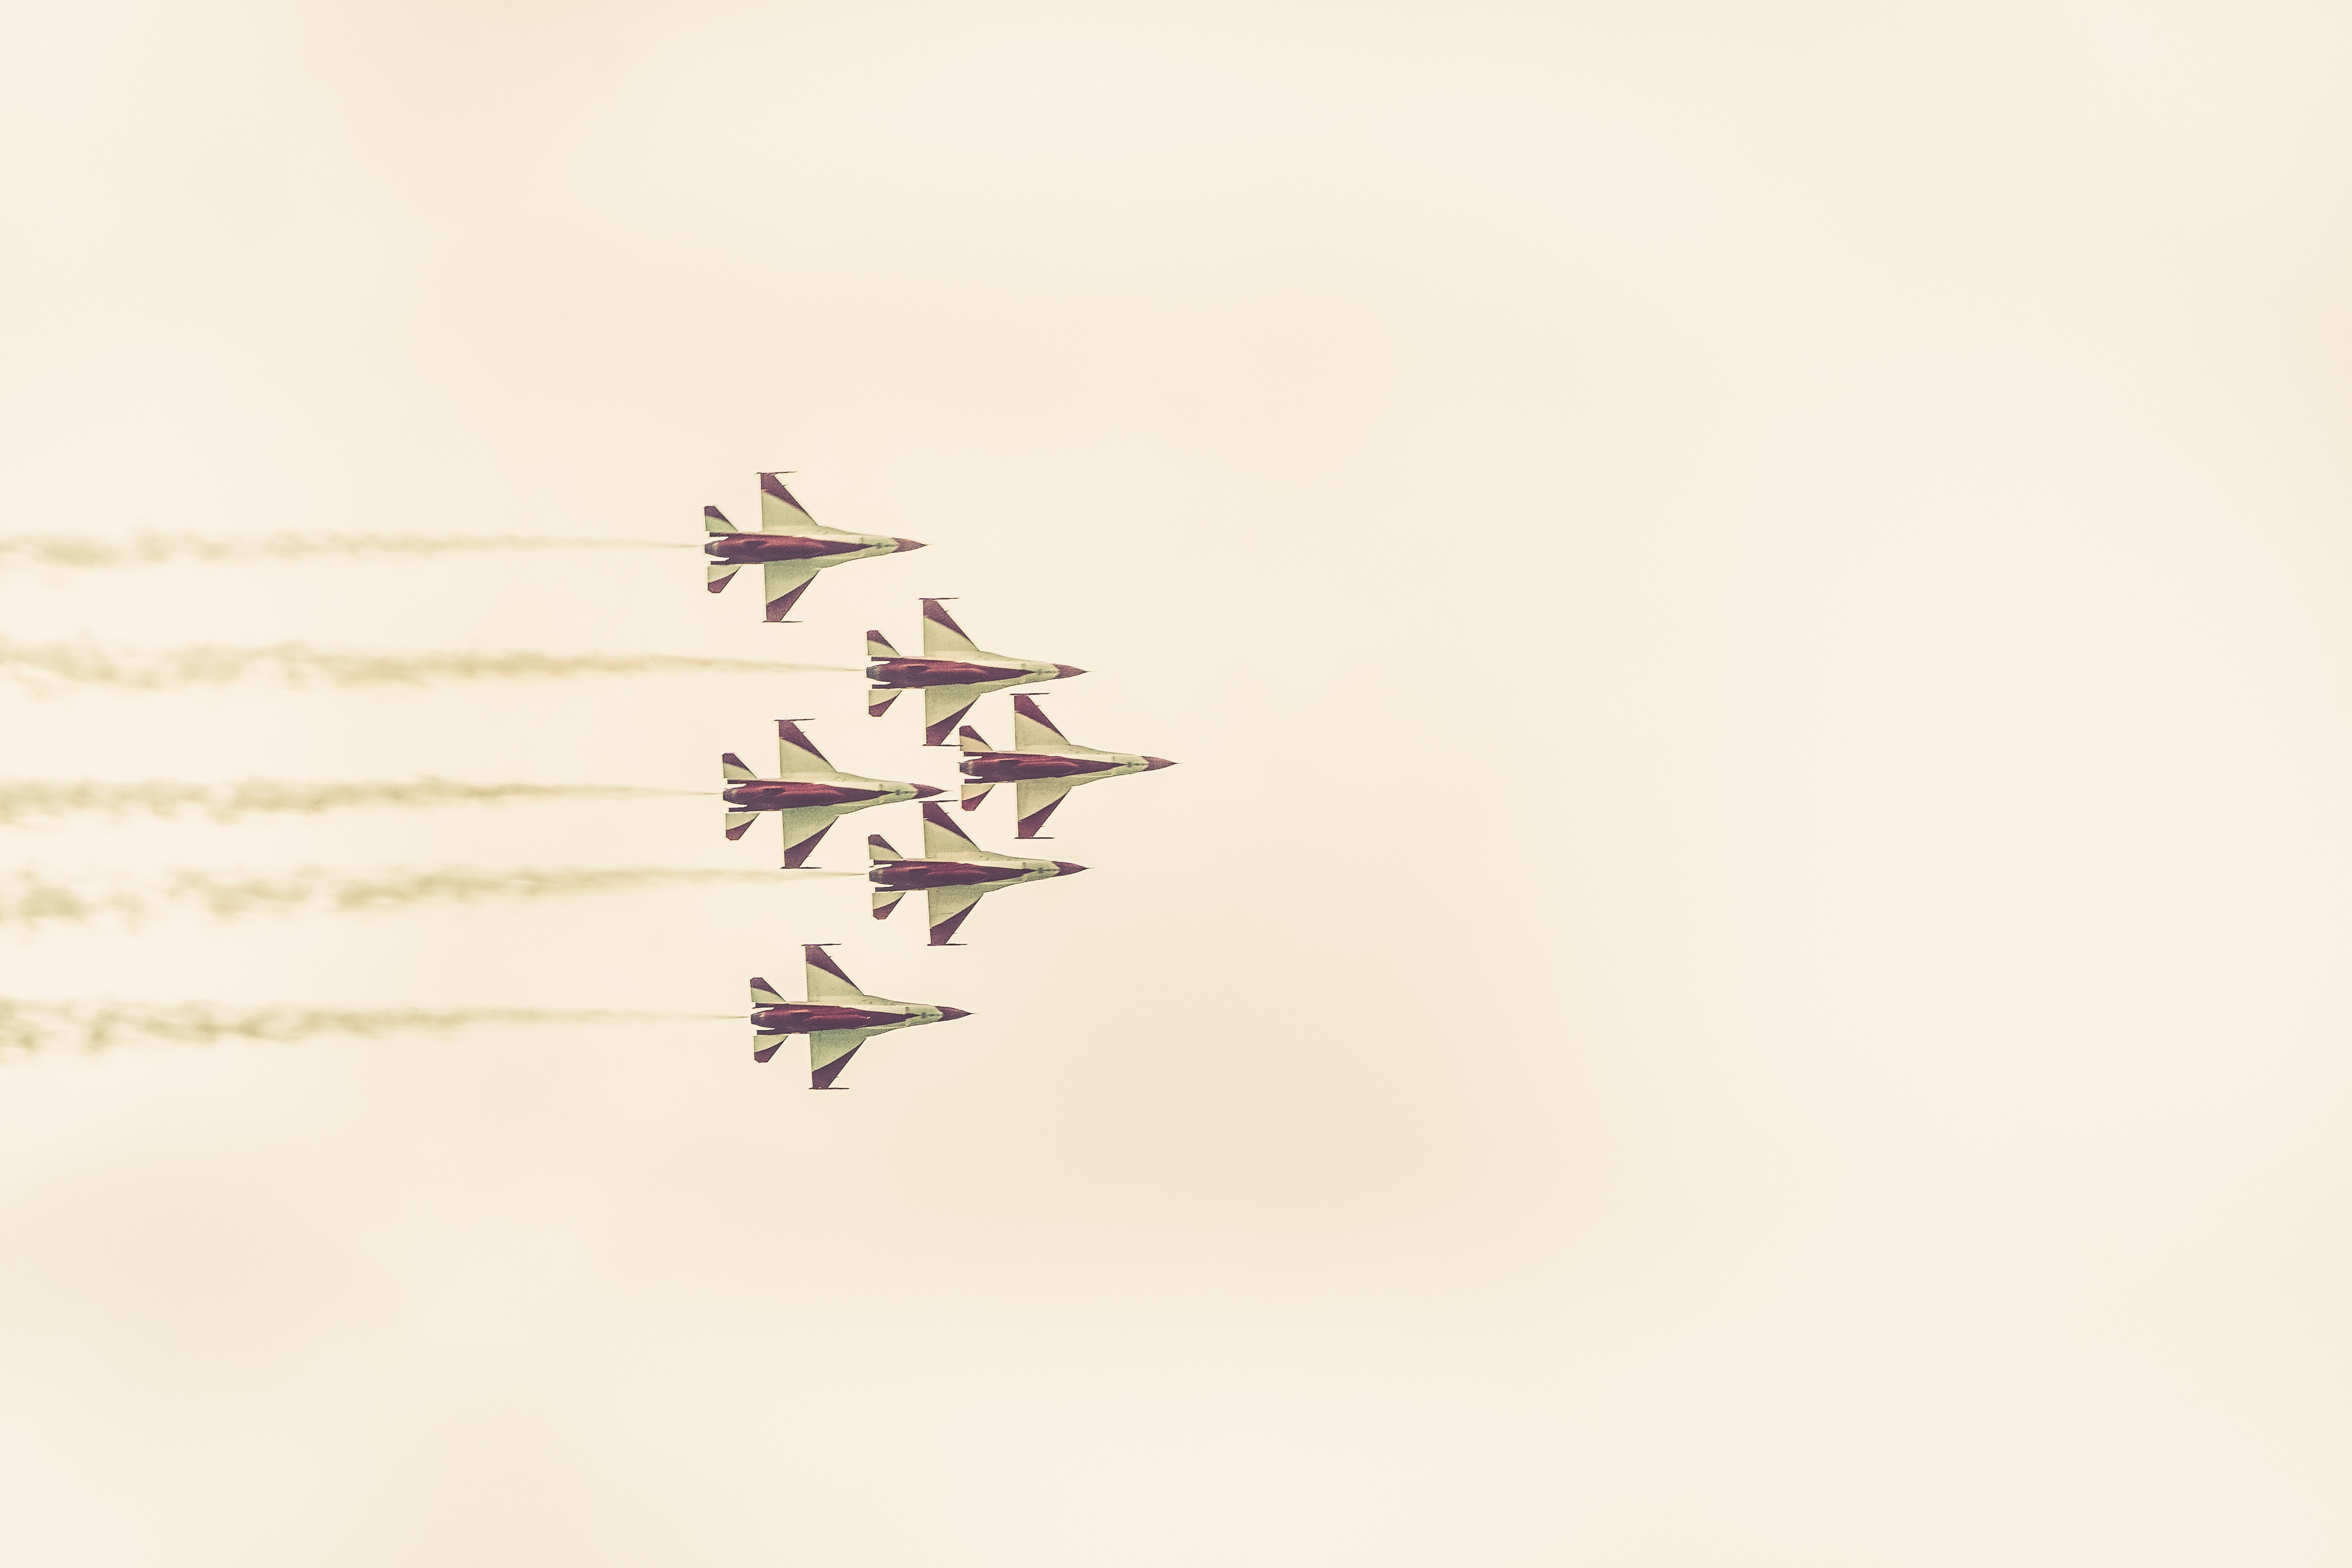 Formation of jets, planes, fighters, aircraft, war, speed, flight, flying, supersonic, training, skill, display, exhibition